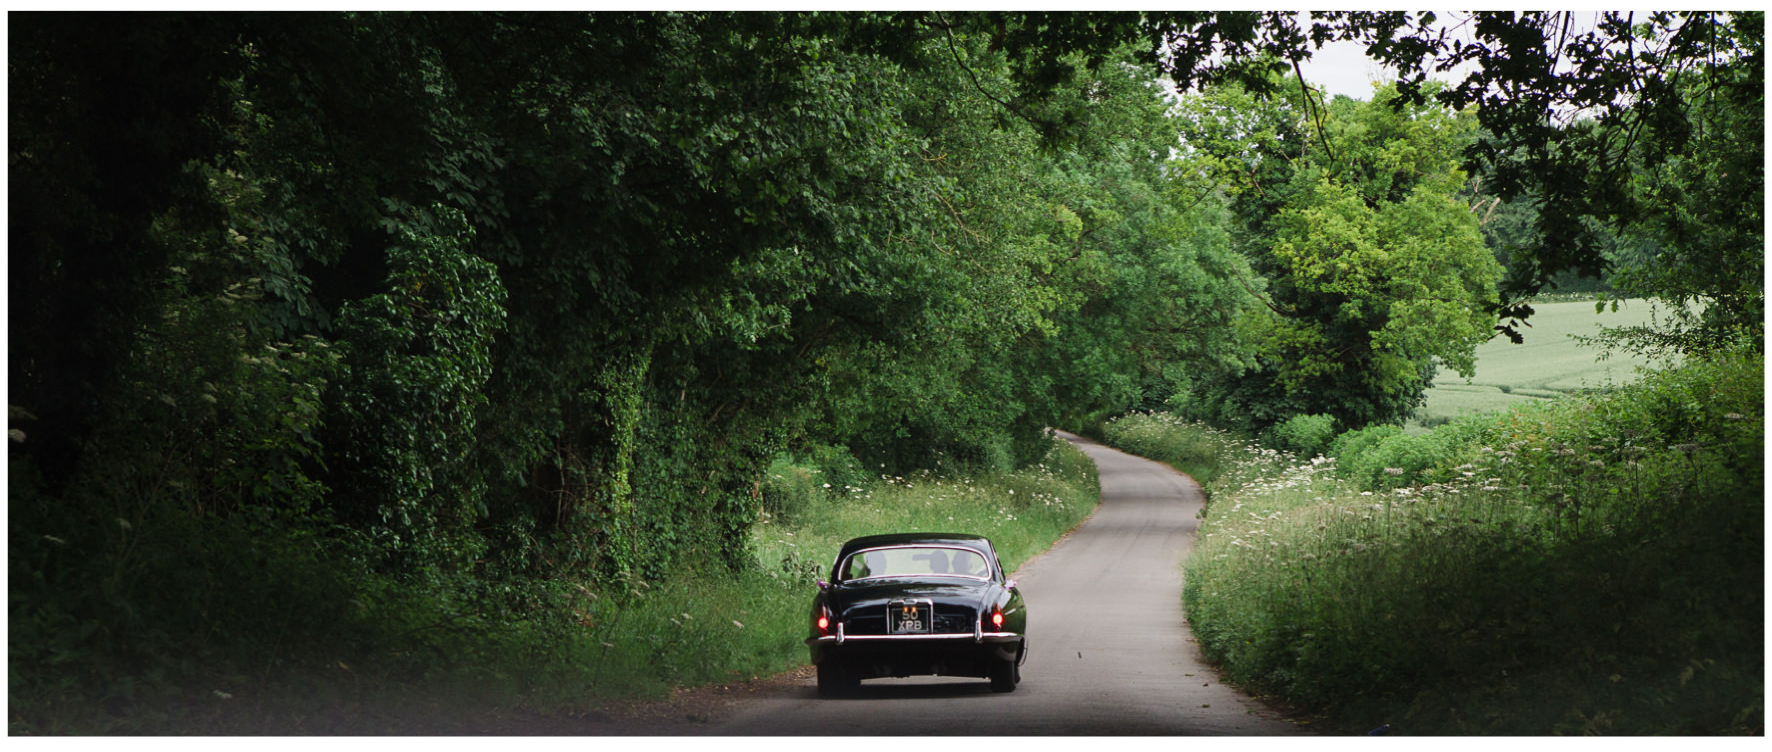 Lucy Davenport Photography, Cornwell Manor, wedding venue, Oxfordshire, Cotswold wedding, wedding car, country lane